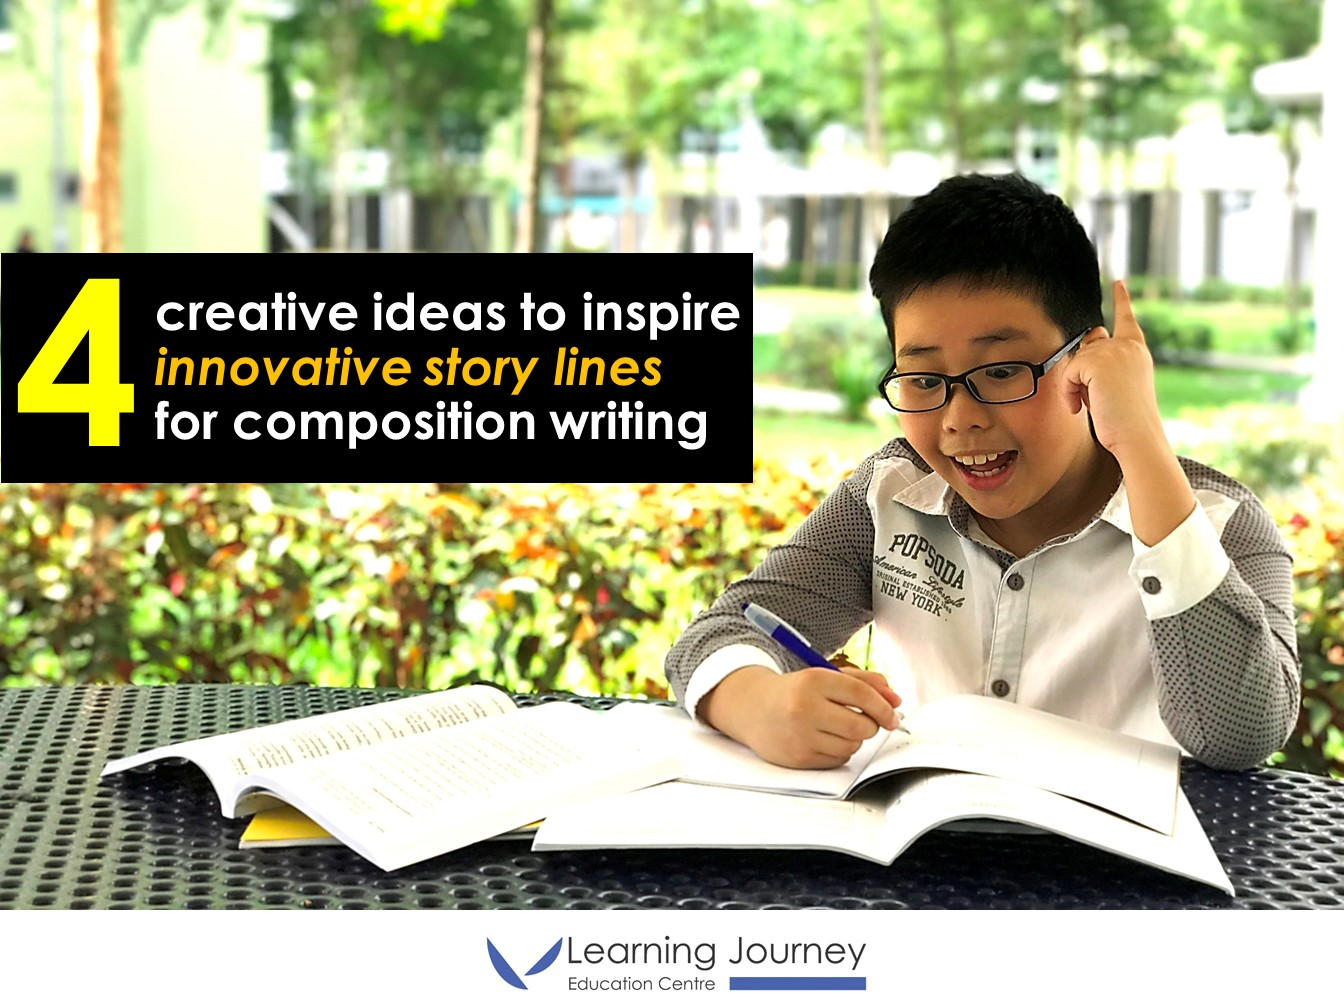 creative writing story ideas discovery Discovery consists not in seeking new lands, but in seeing with new eyes ~ marcel proust discovering things in a whole new perspective find this pin and more on hsc discovery creative writing ideas by al k.